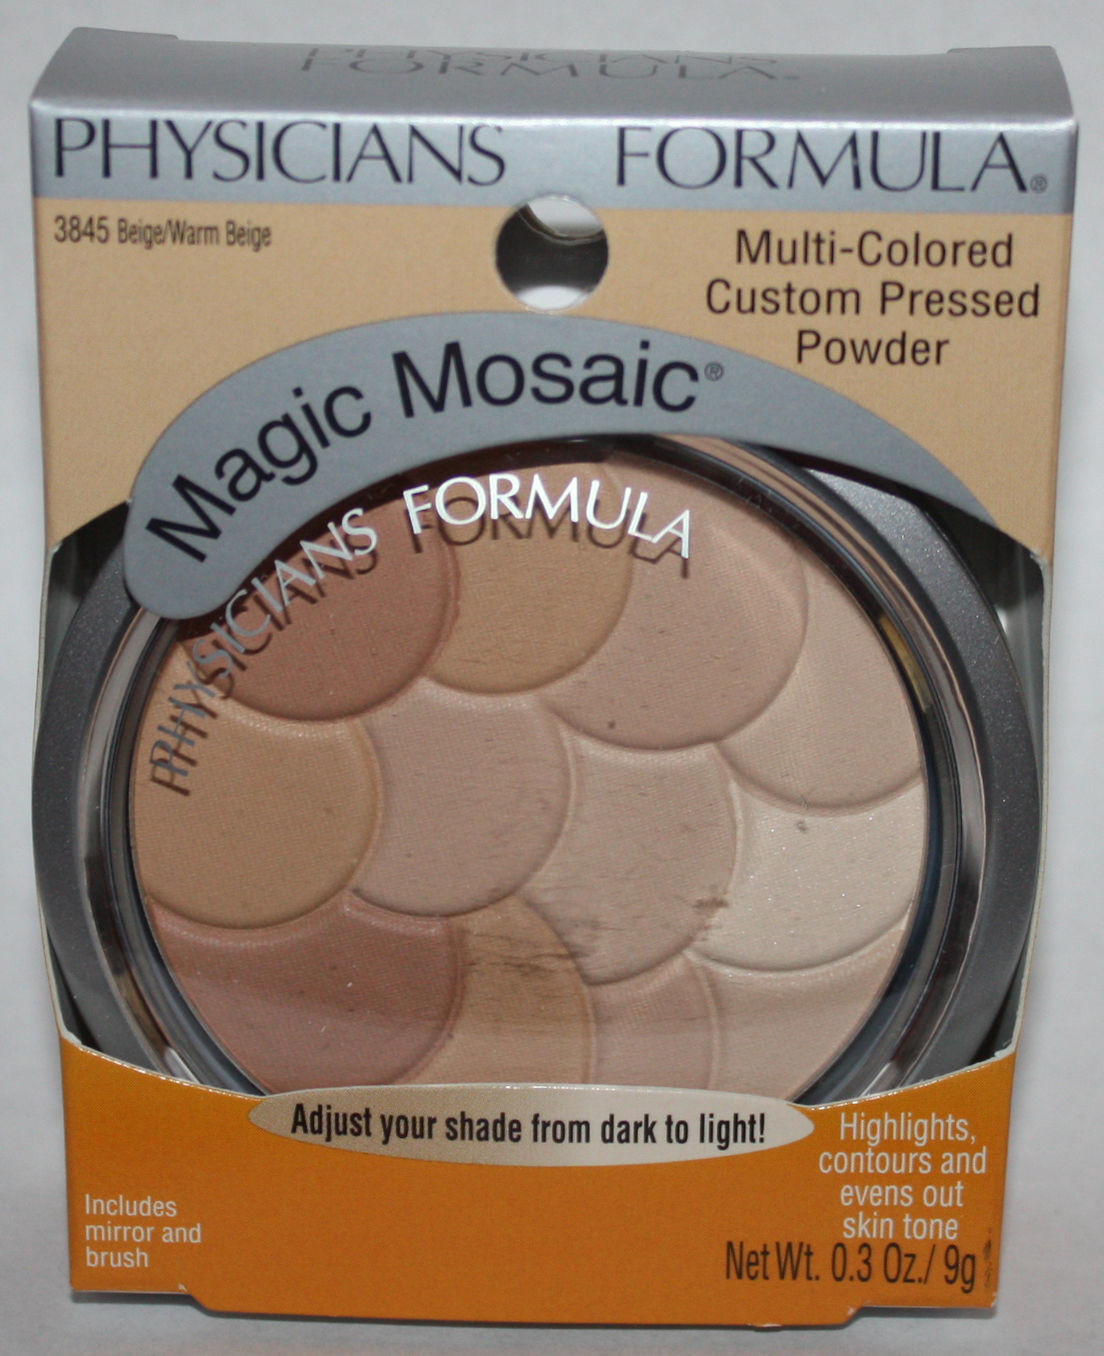 Physicians Formula MAGIC MOSAIC Pressed Powder #3845 Beige/Warm Beige 0.3 oz